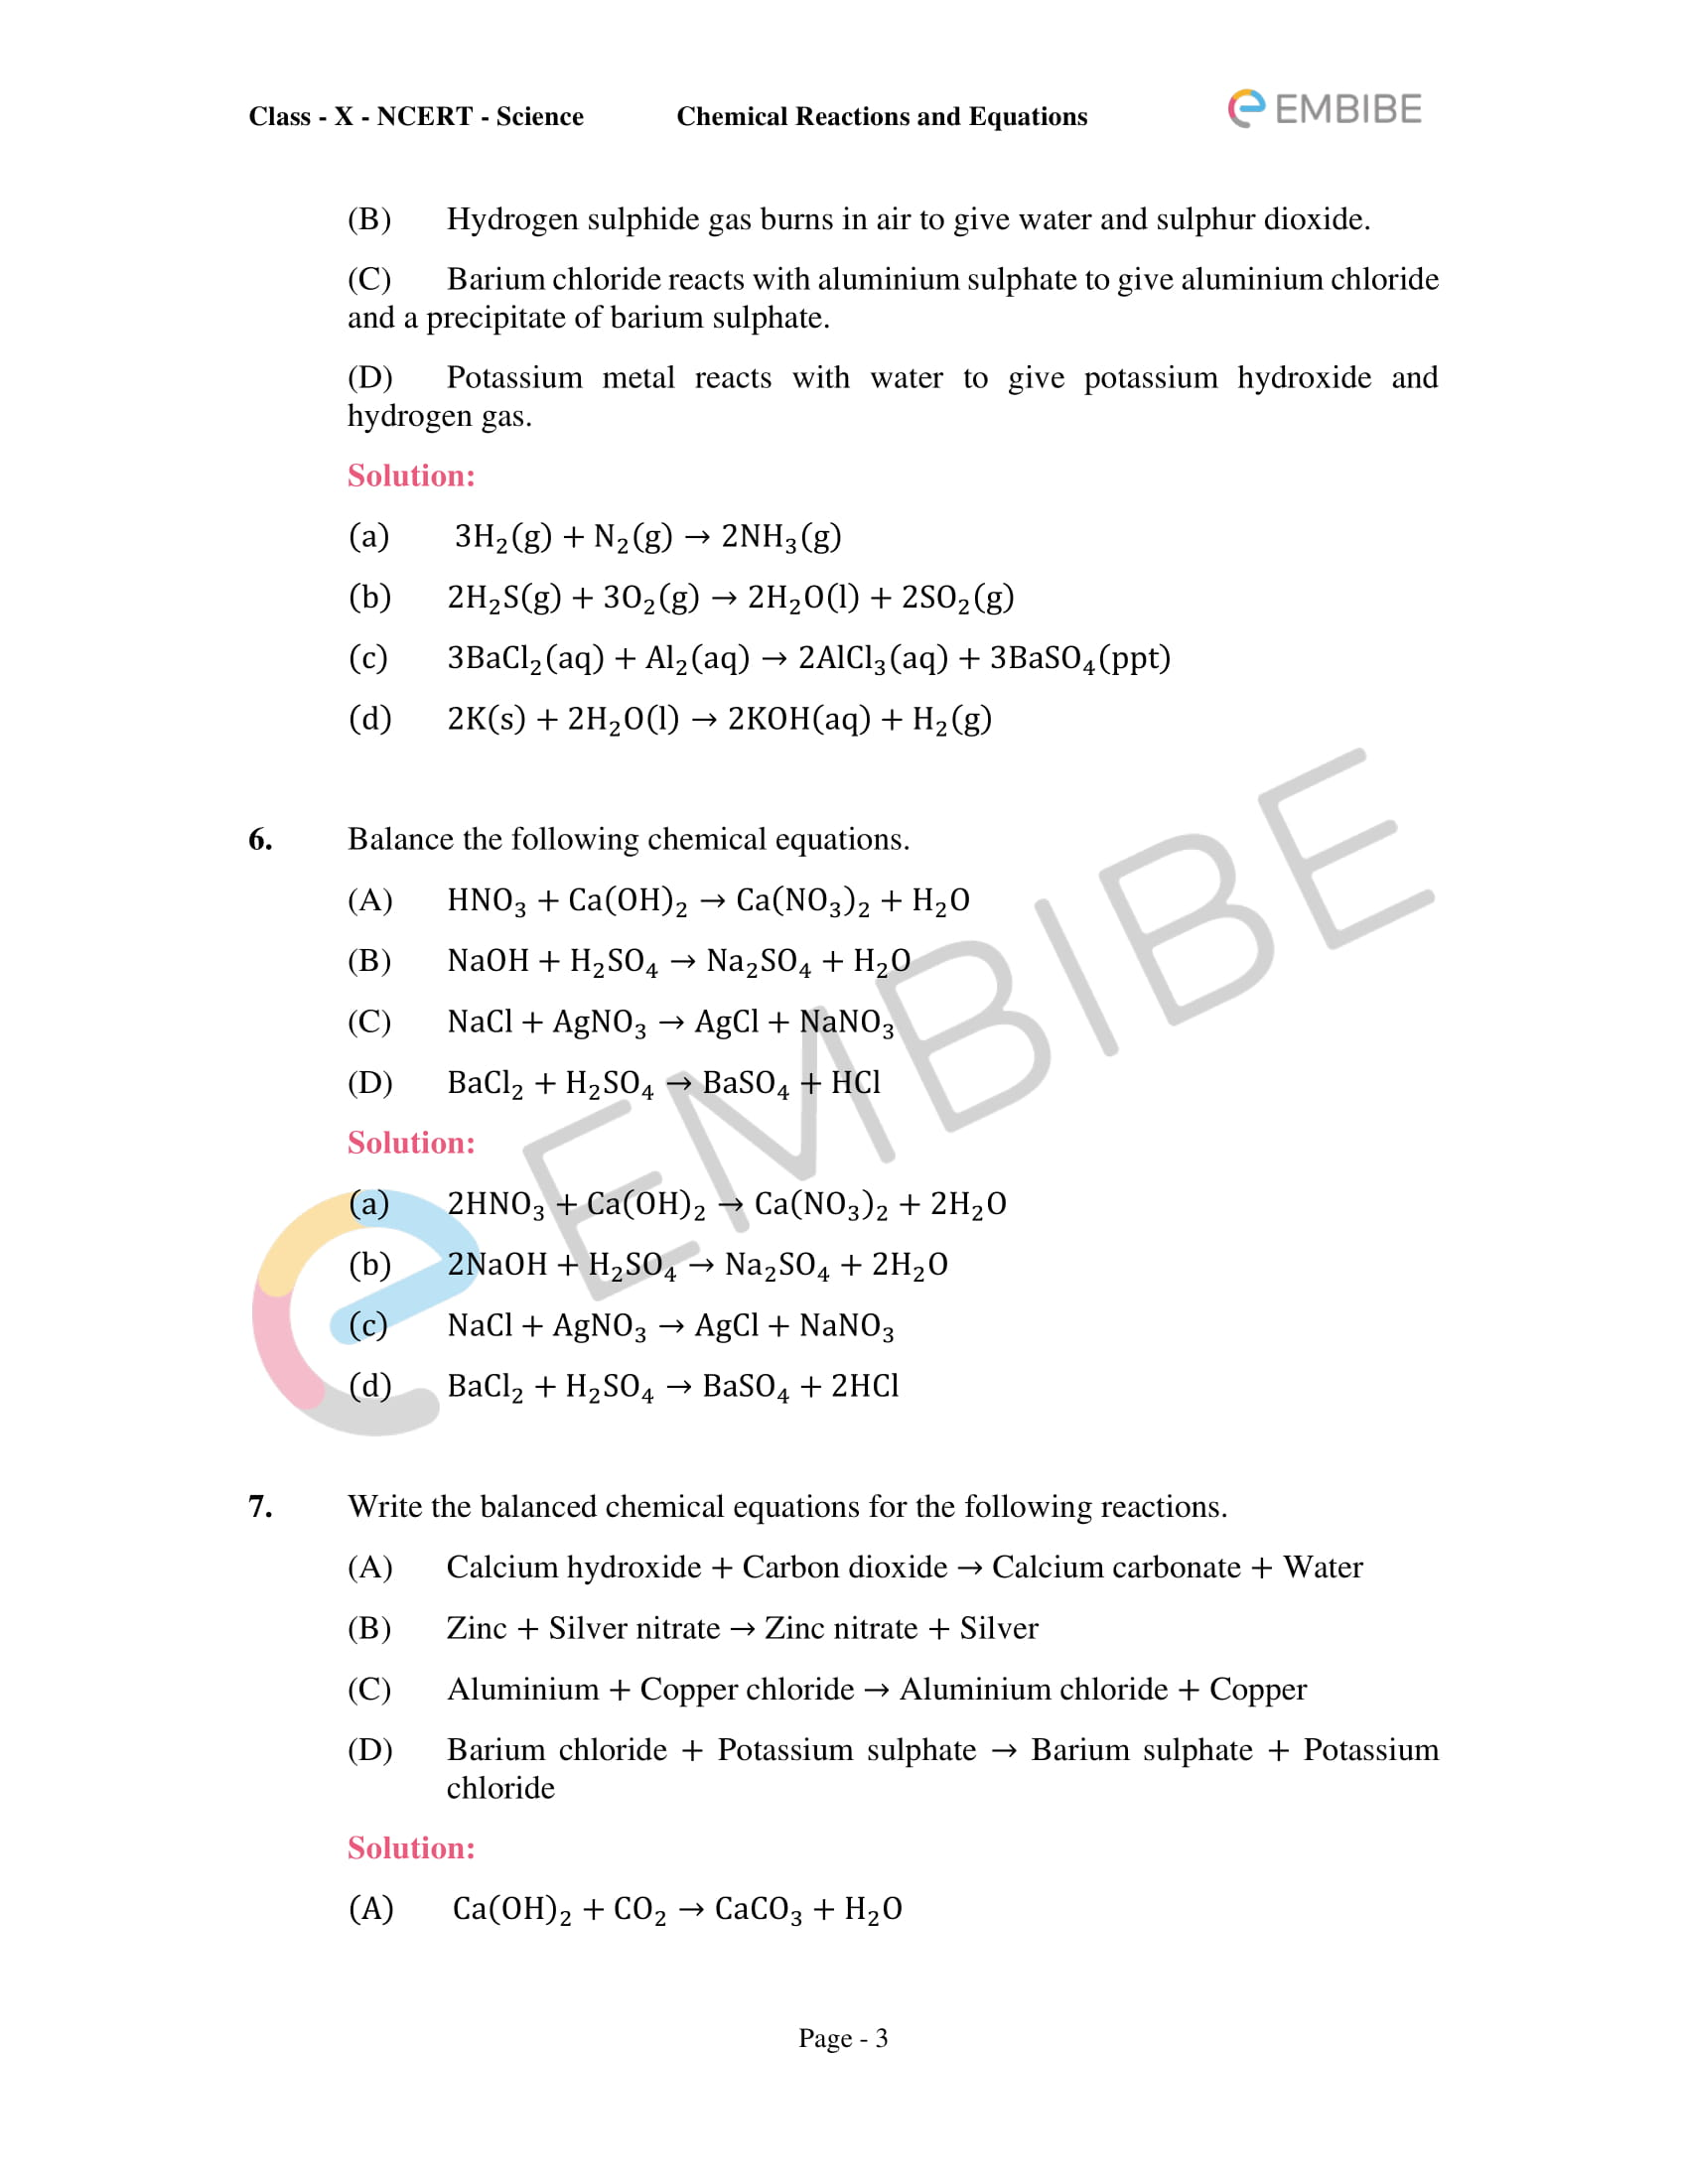 CBSE NCERT Solutions for Class 10 Science Chapter 1: Chemical Reactions And Equations-3